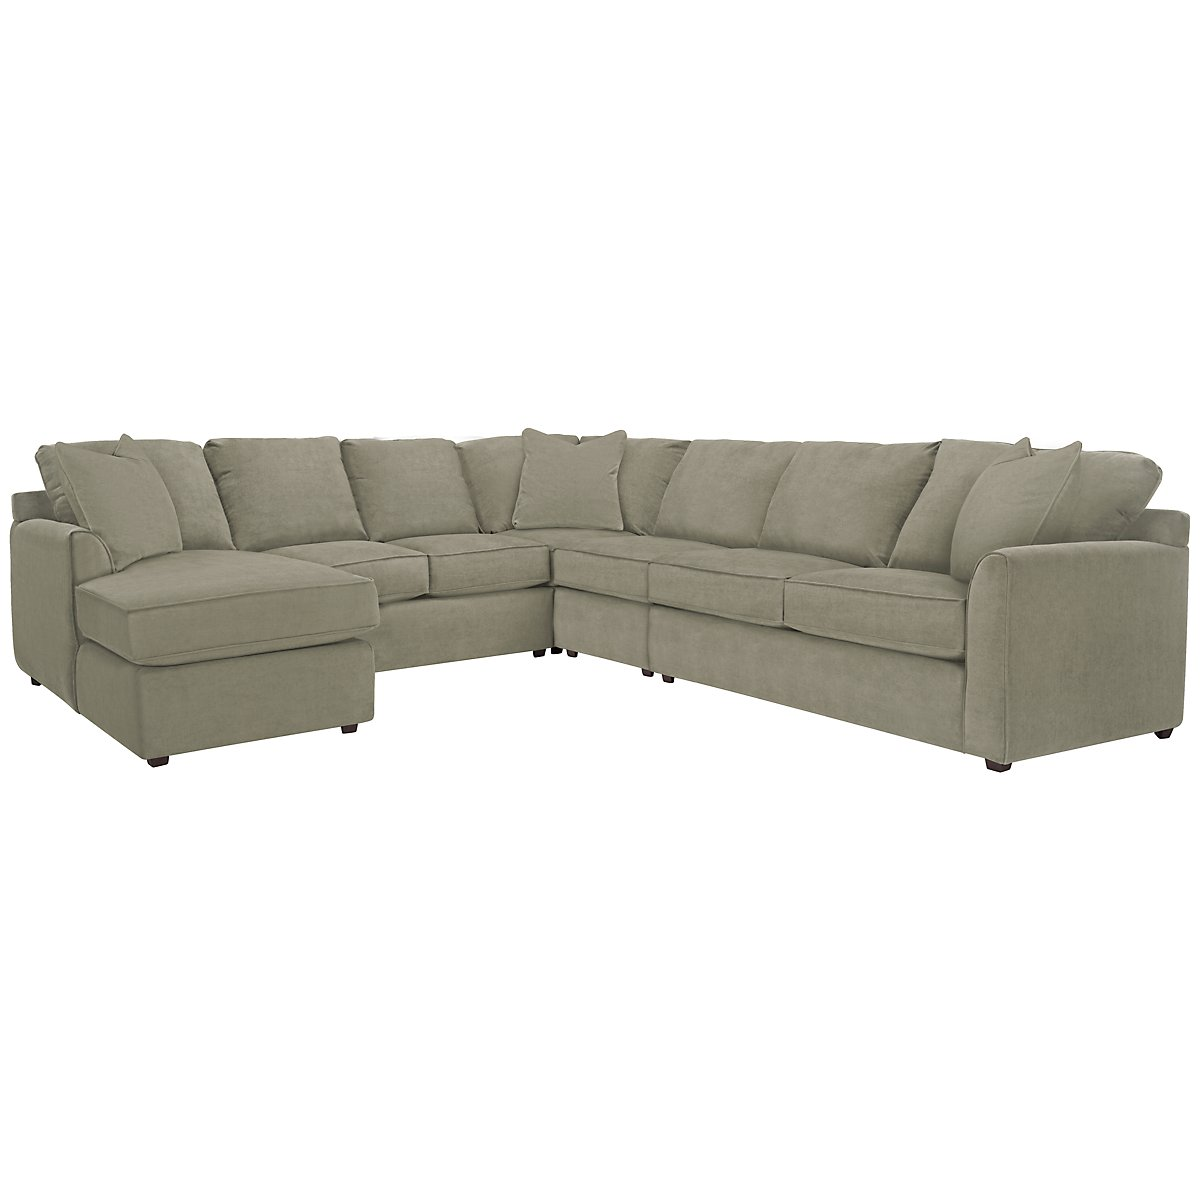 Express3 Light Green Microfiber Large Left Chaise Sectional